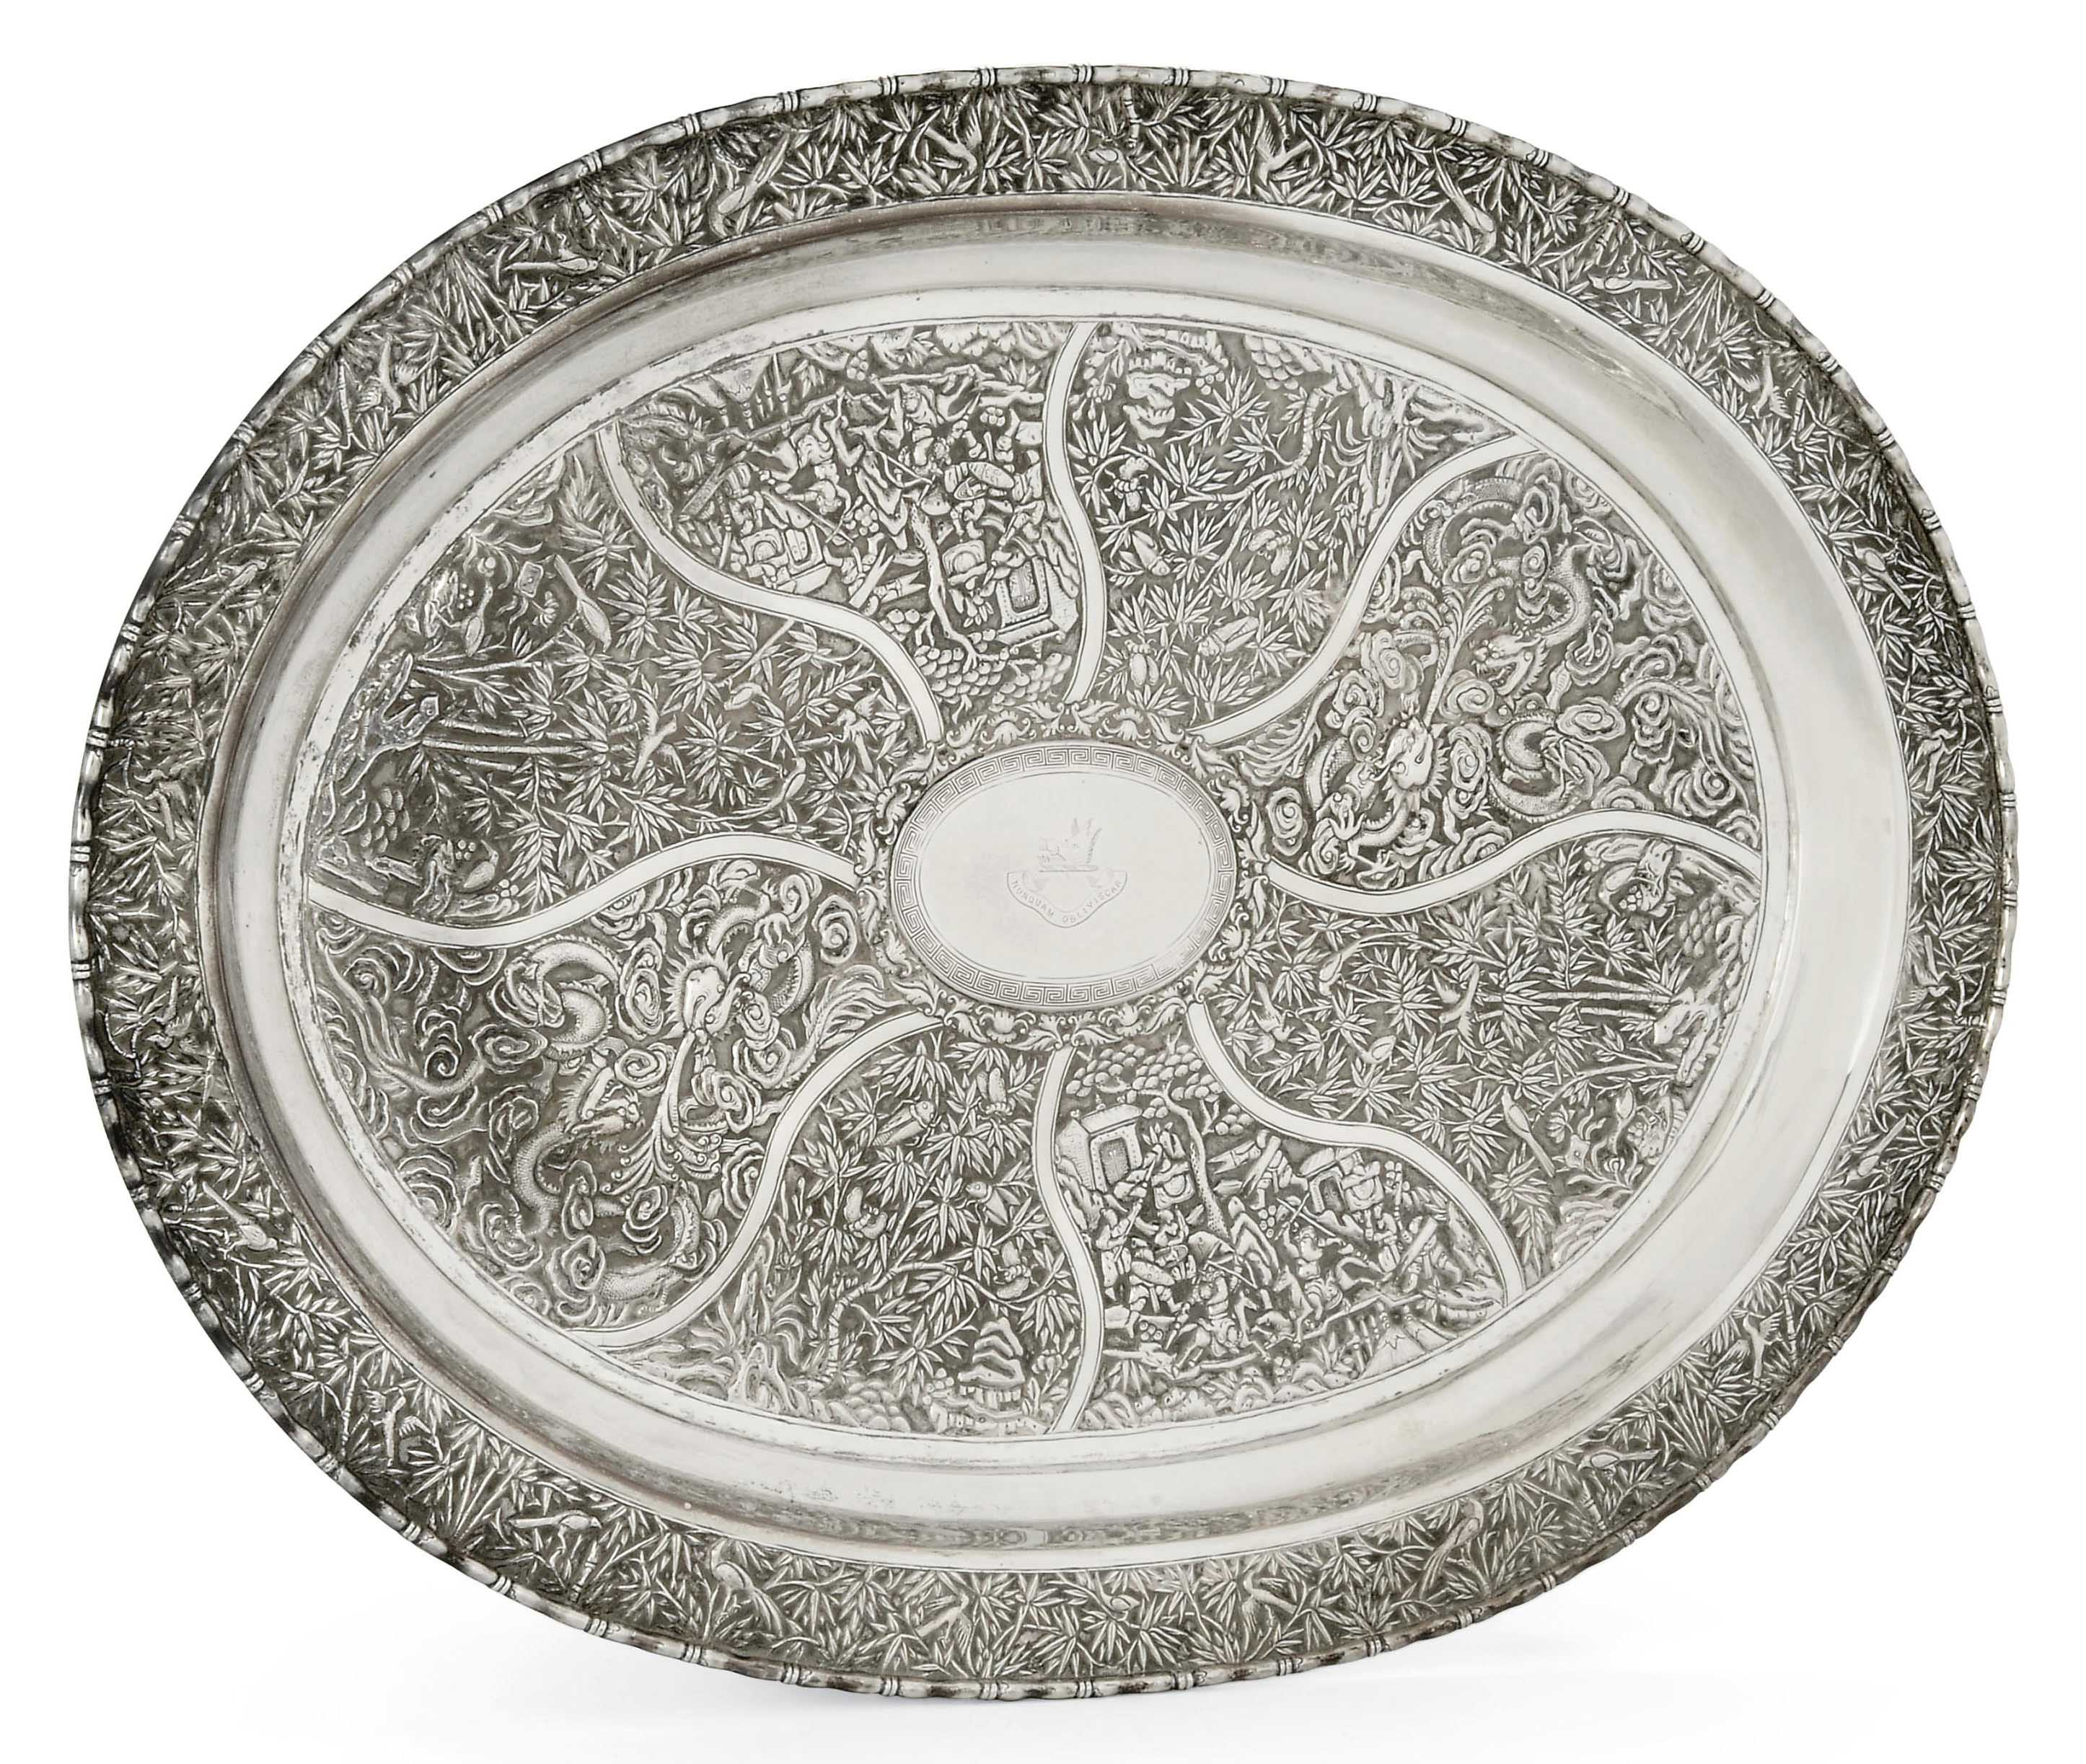 A LARGE CHINESE EXPORT SILVER TRAY